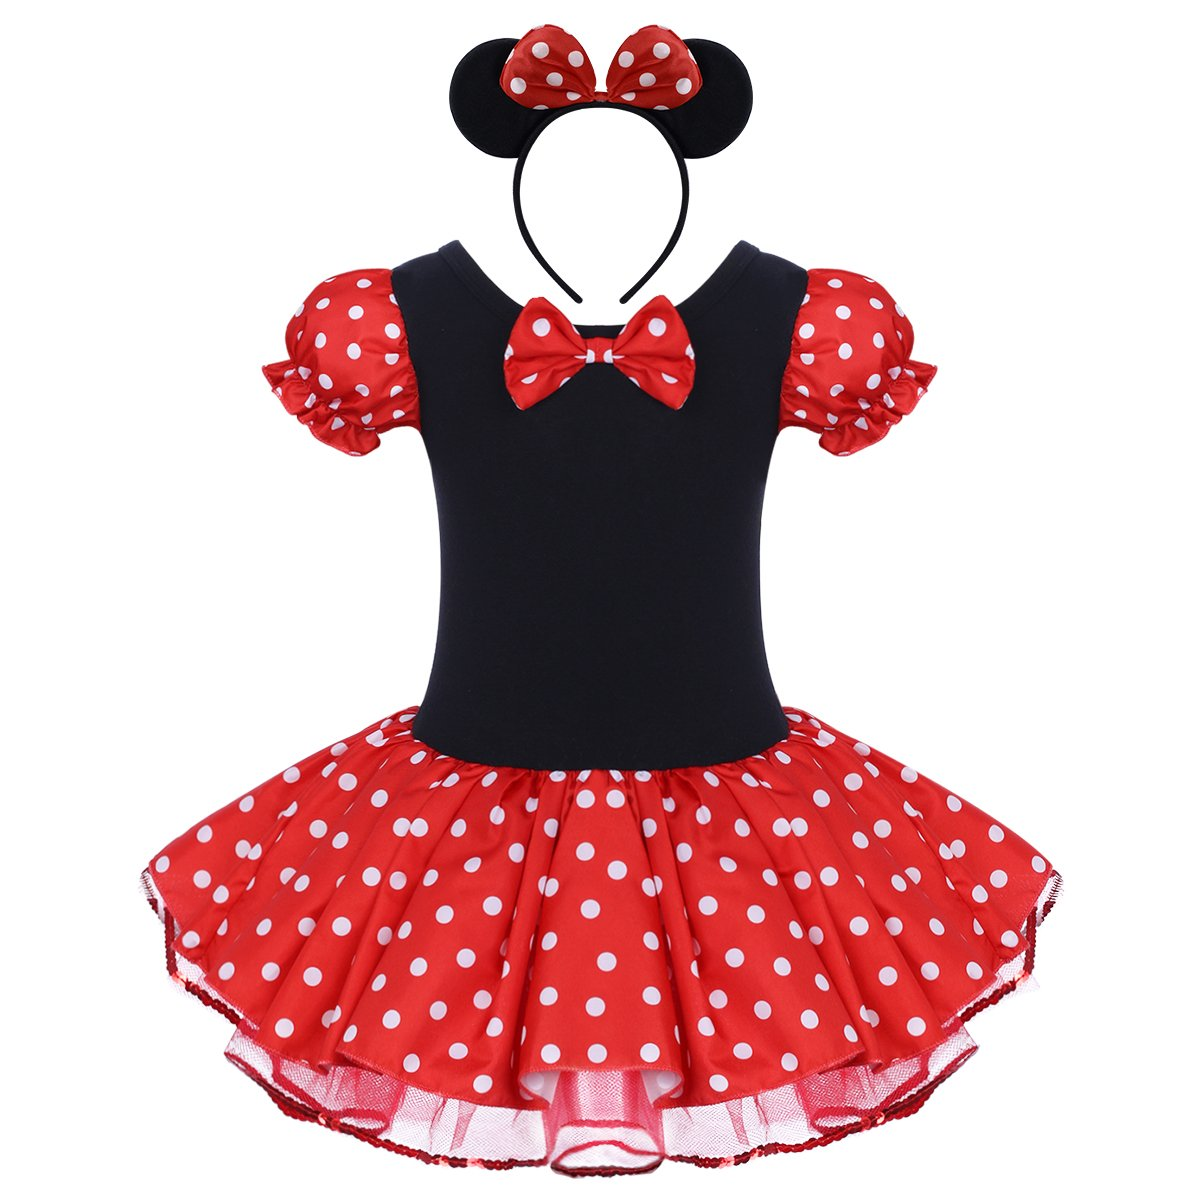 FYMNSI Baby Girls Polka Dots Princess Minnie Dress with Bowknot Headband